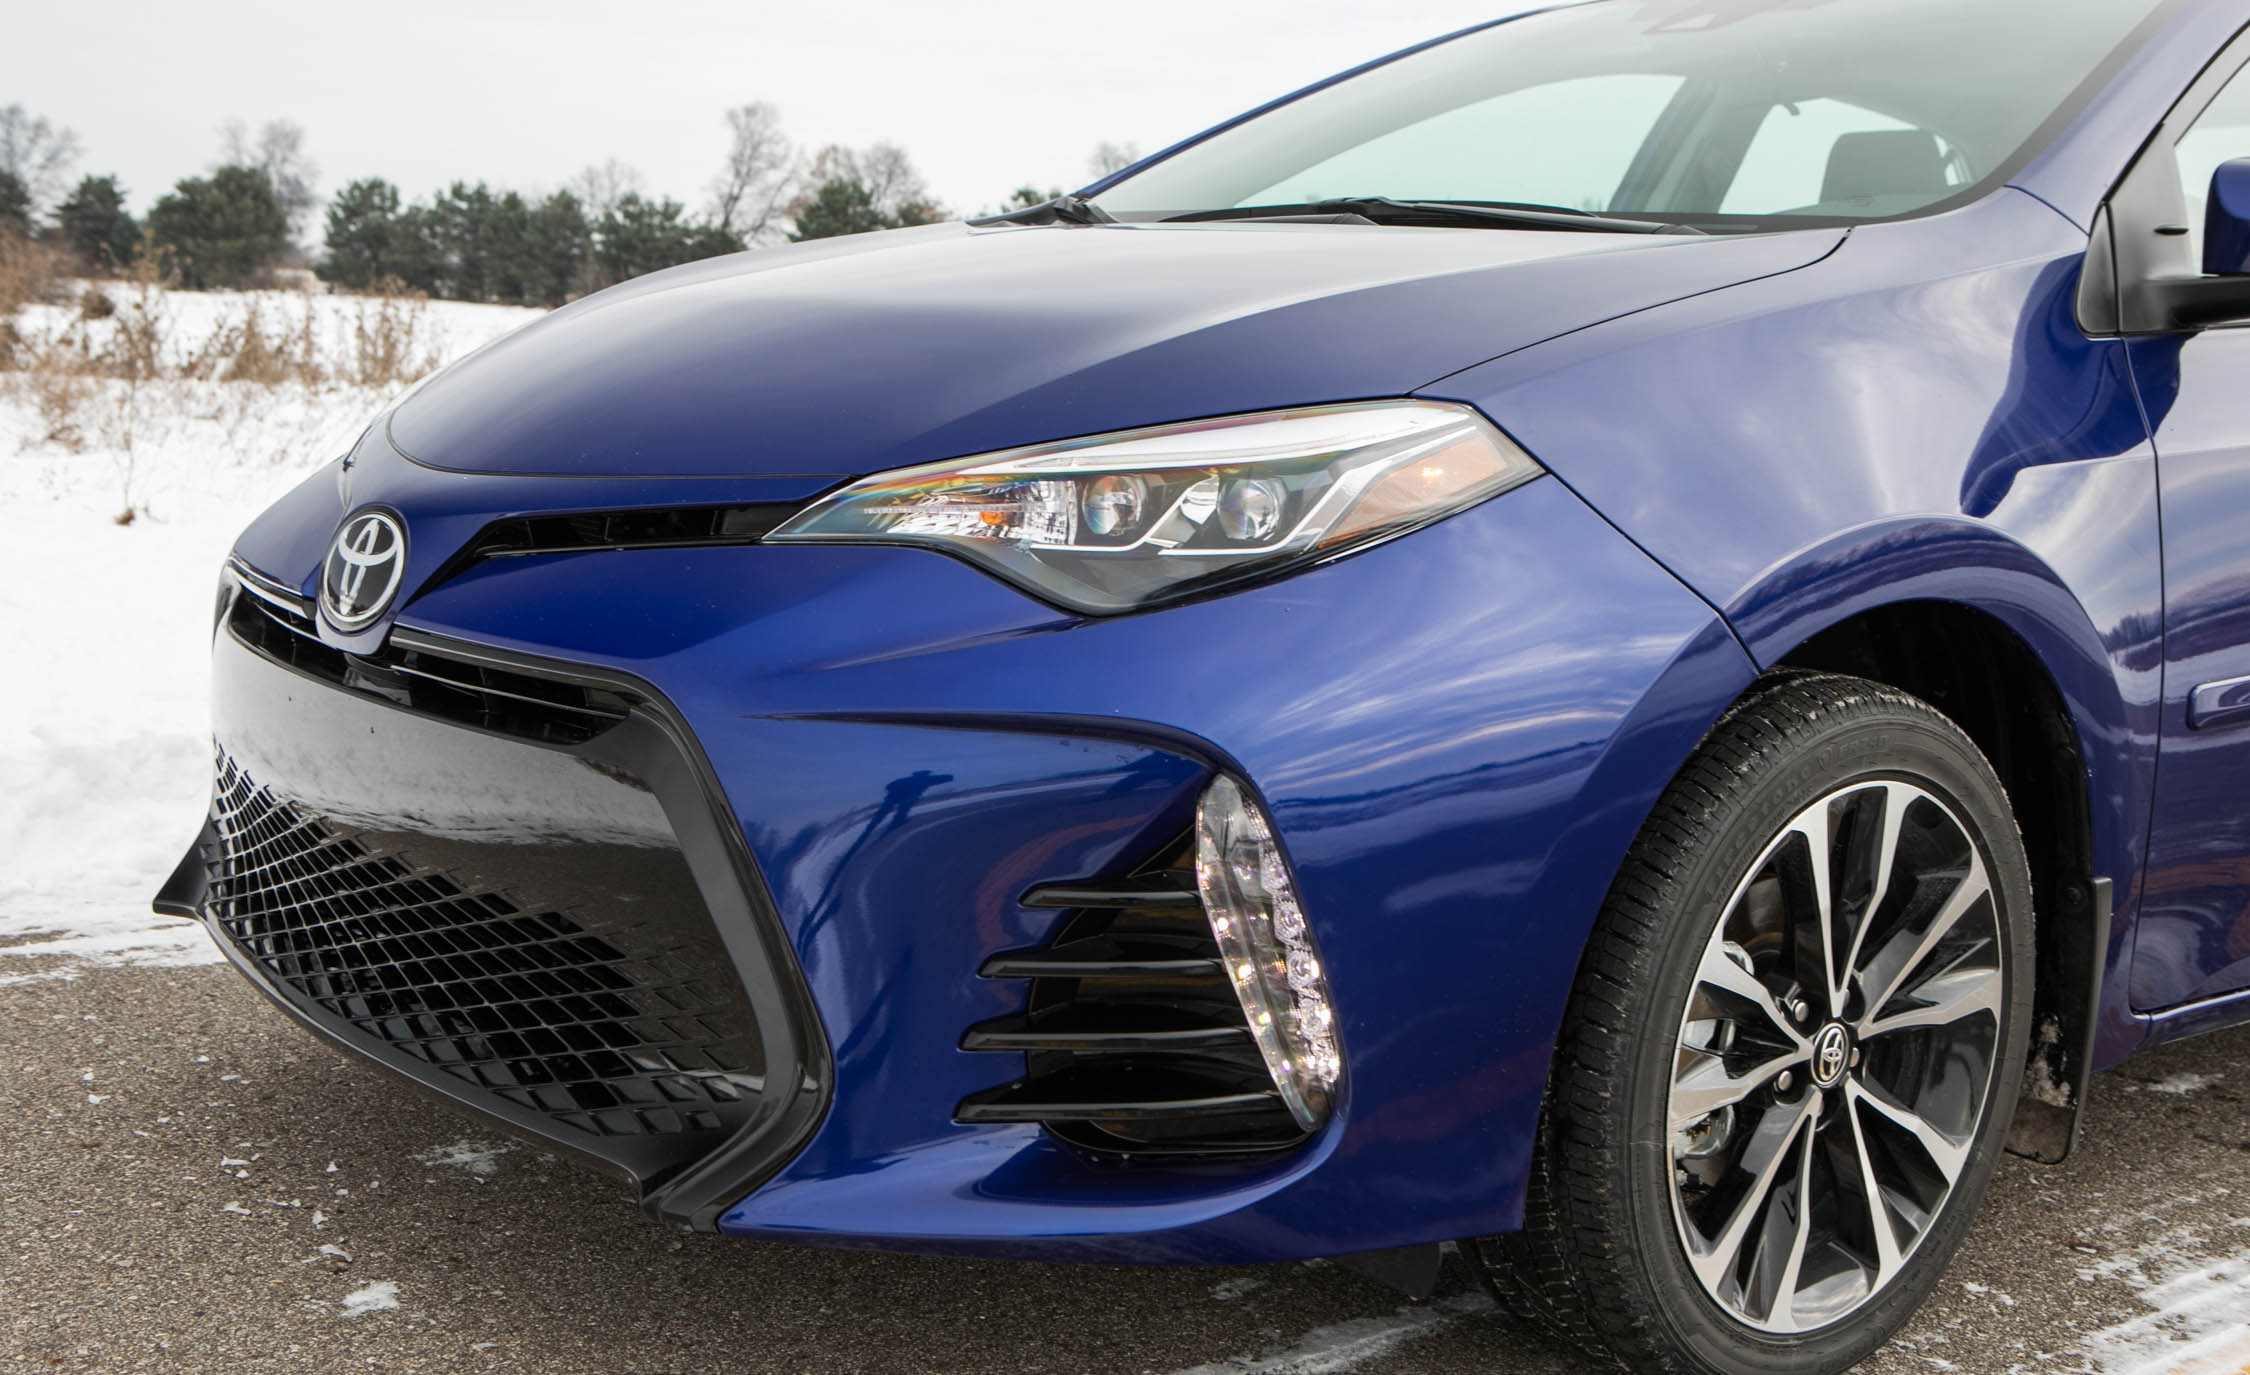 2017 Toyota Corolla XSE Exterior View Grille And Bumper (View 64 of 75)